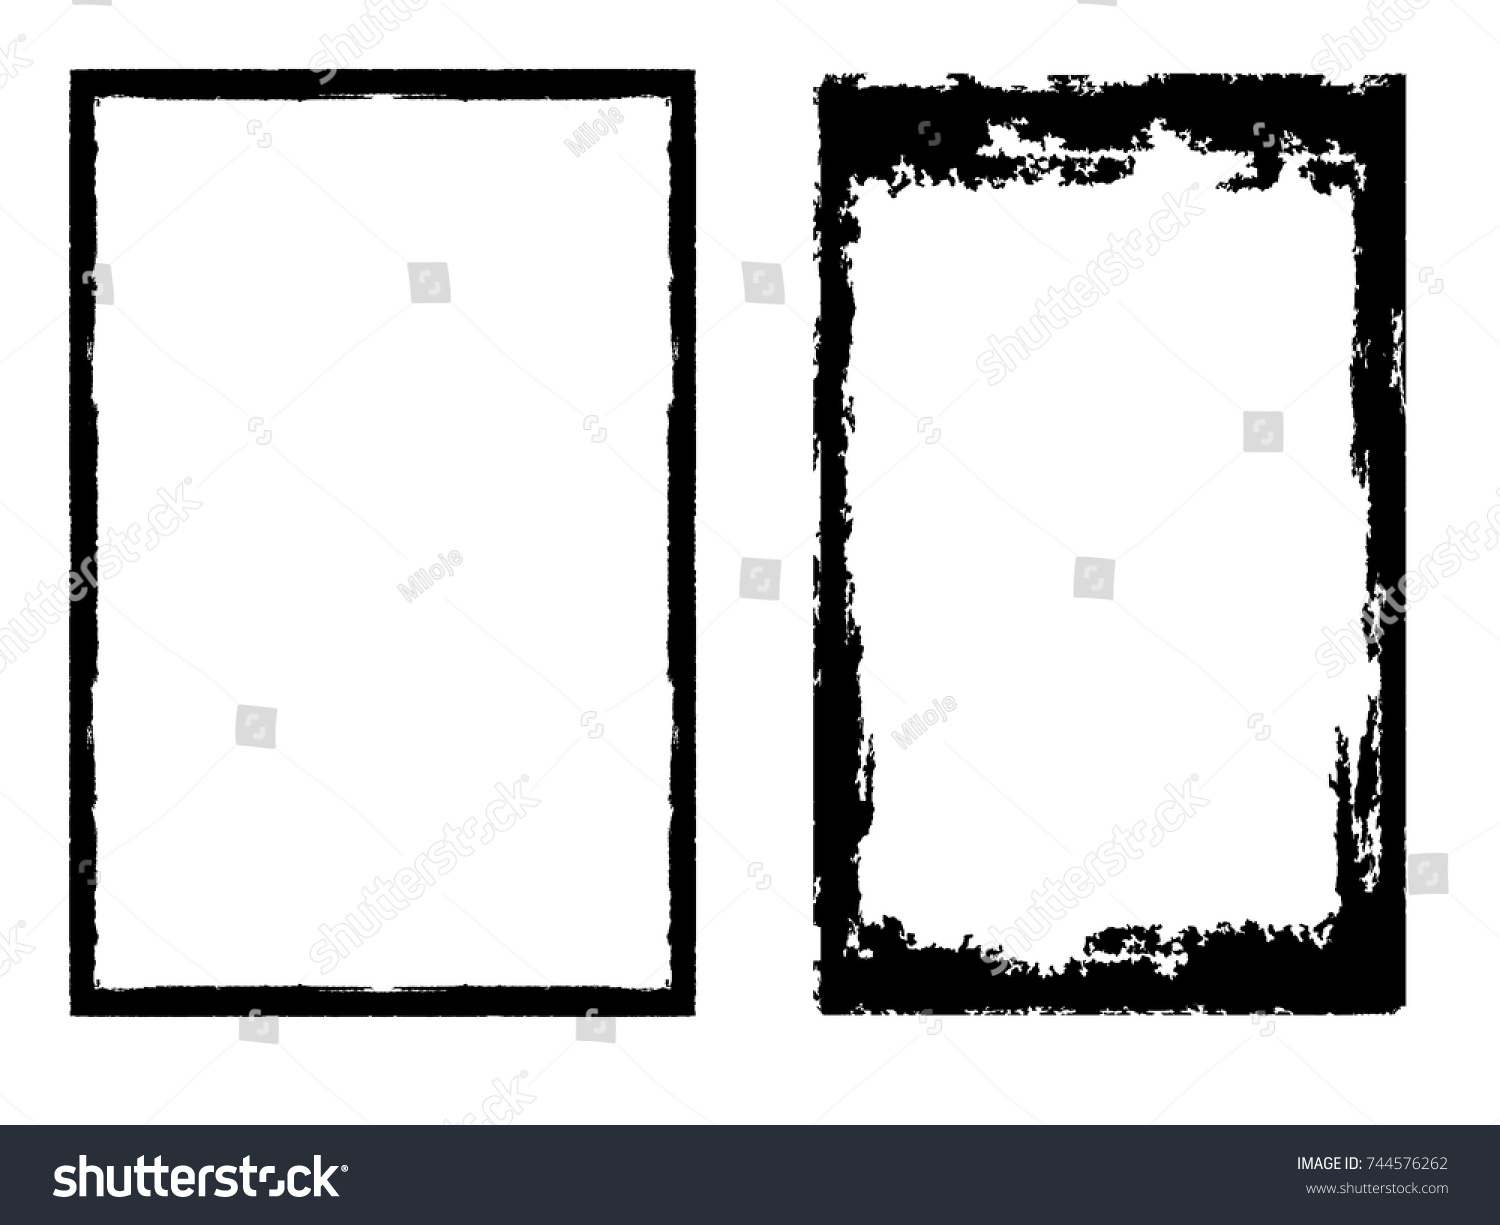 Vector frames rectangles image distress texture stock vector vector frames rectangles for image distress texture grunge black borders isolated on the jeuxipadfo Images